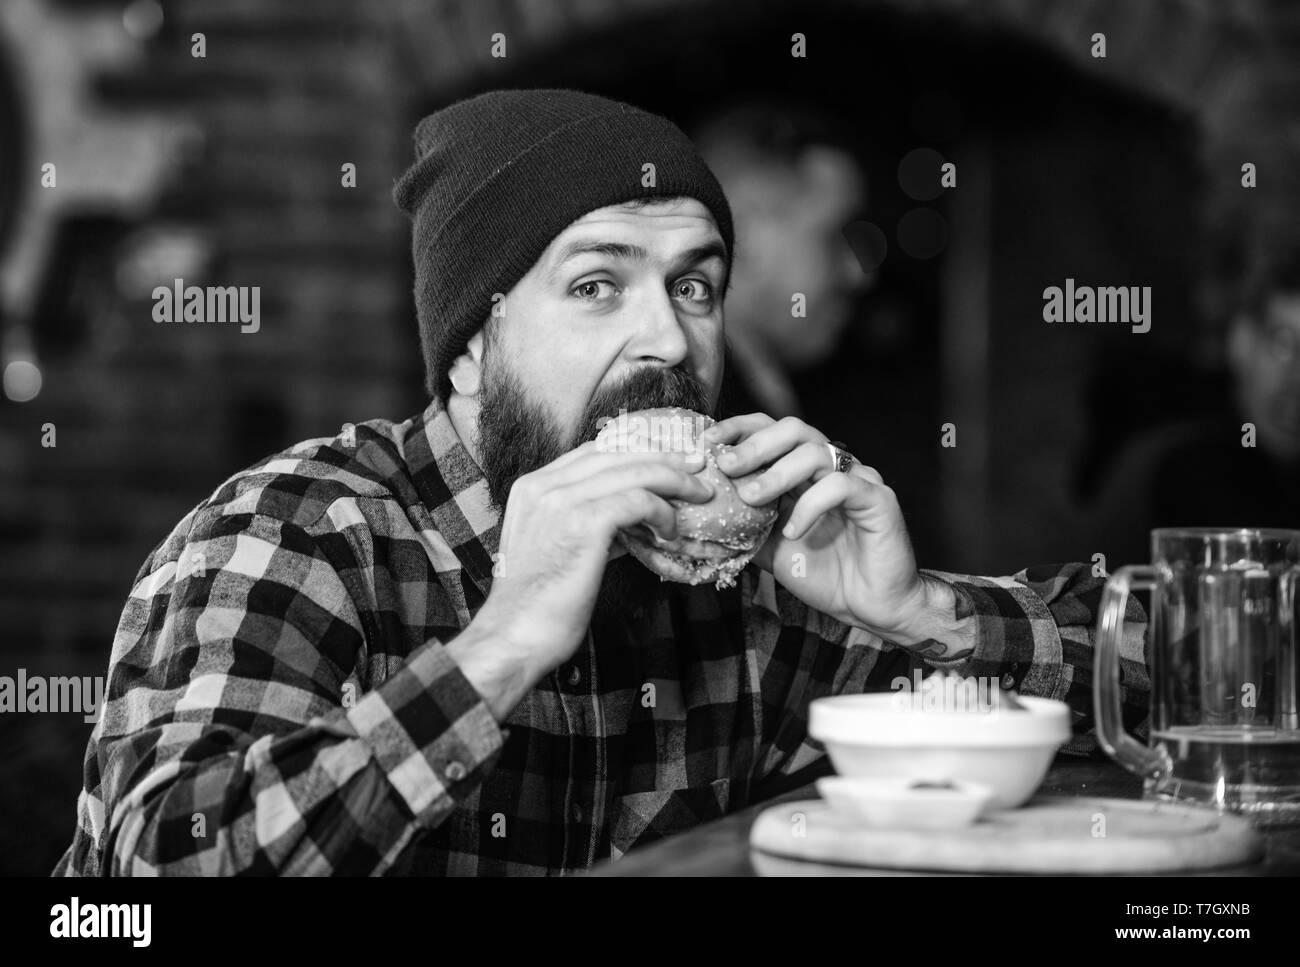 Brutal hipster bearded man sit at bar counter. High calorie food. Cheat meal. Delicious burger concept. Enjoy taste of fresh burger. Hipster hungry man eat burger. Man with beard eat burger menu. - Stock Image